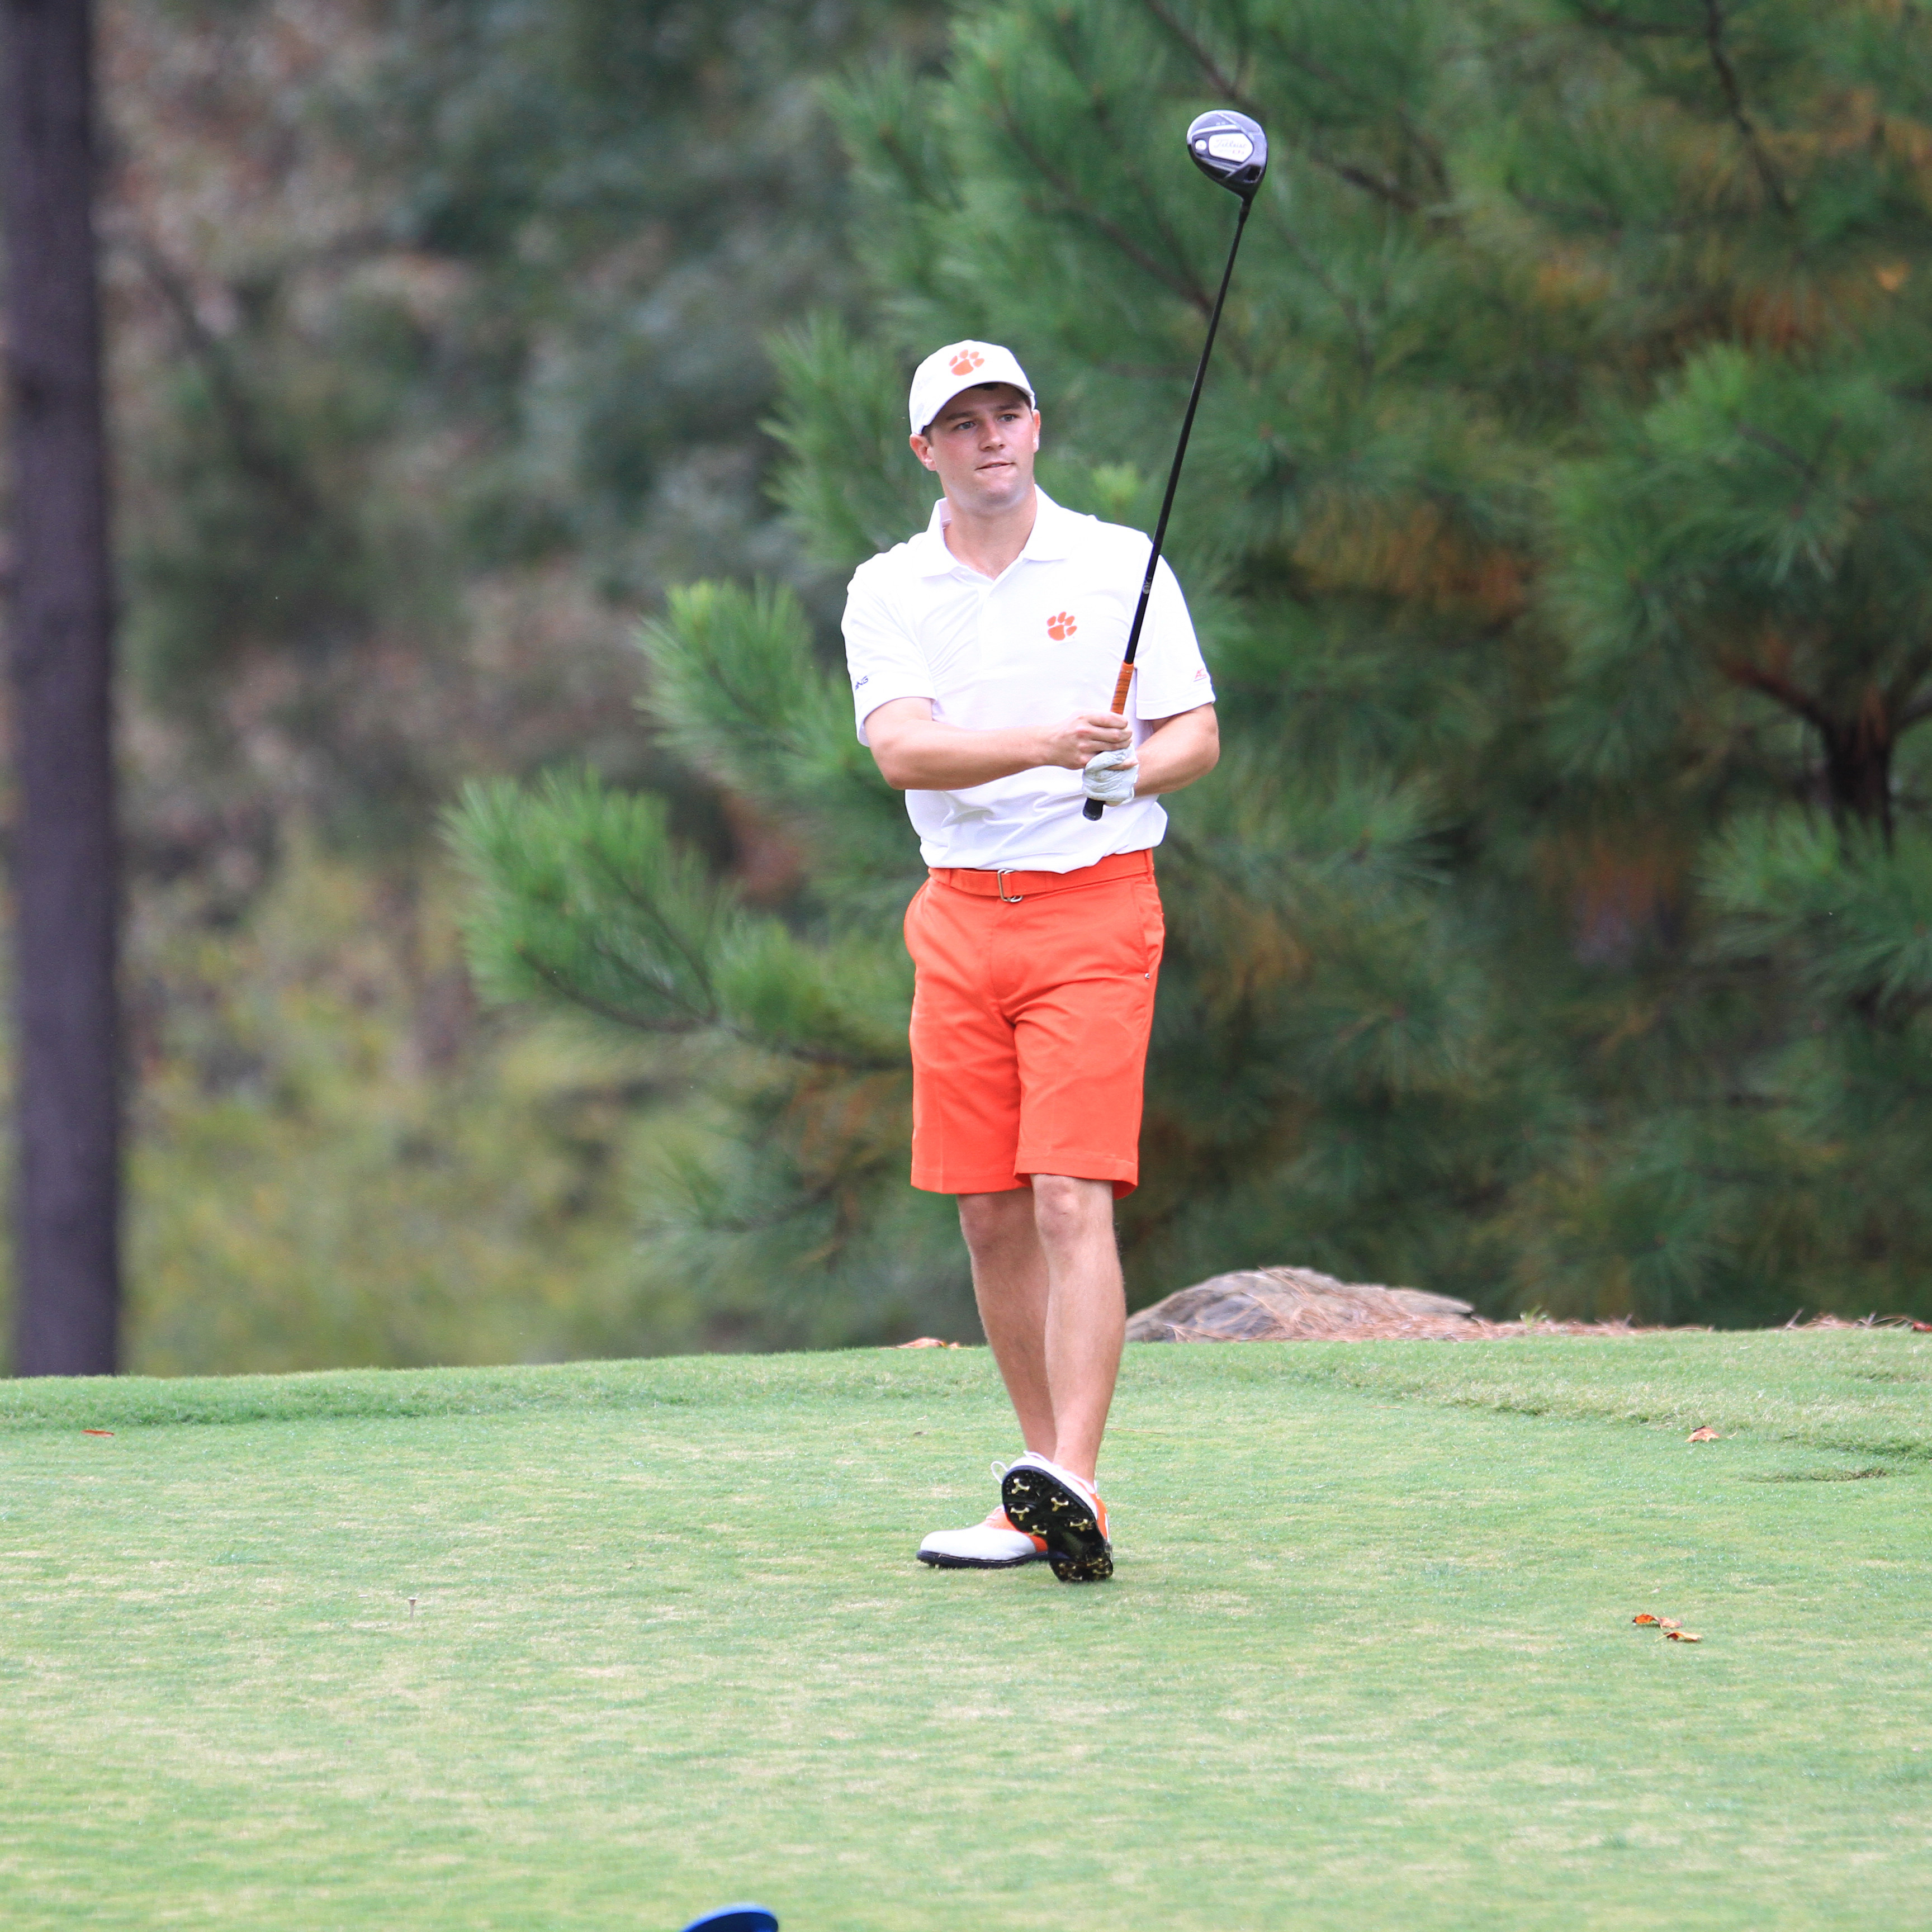 Capps Leads Clemson in Second Round of NCAAs